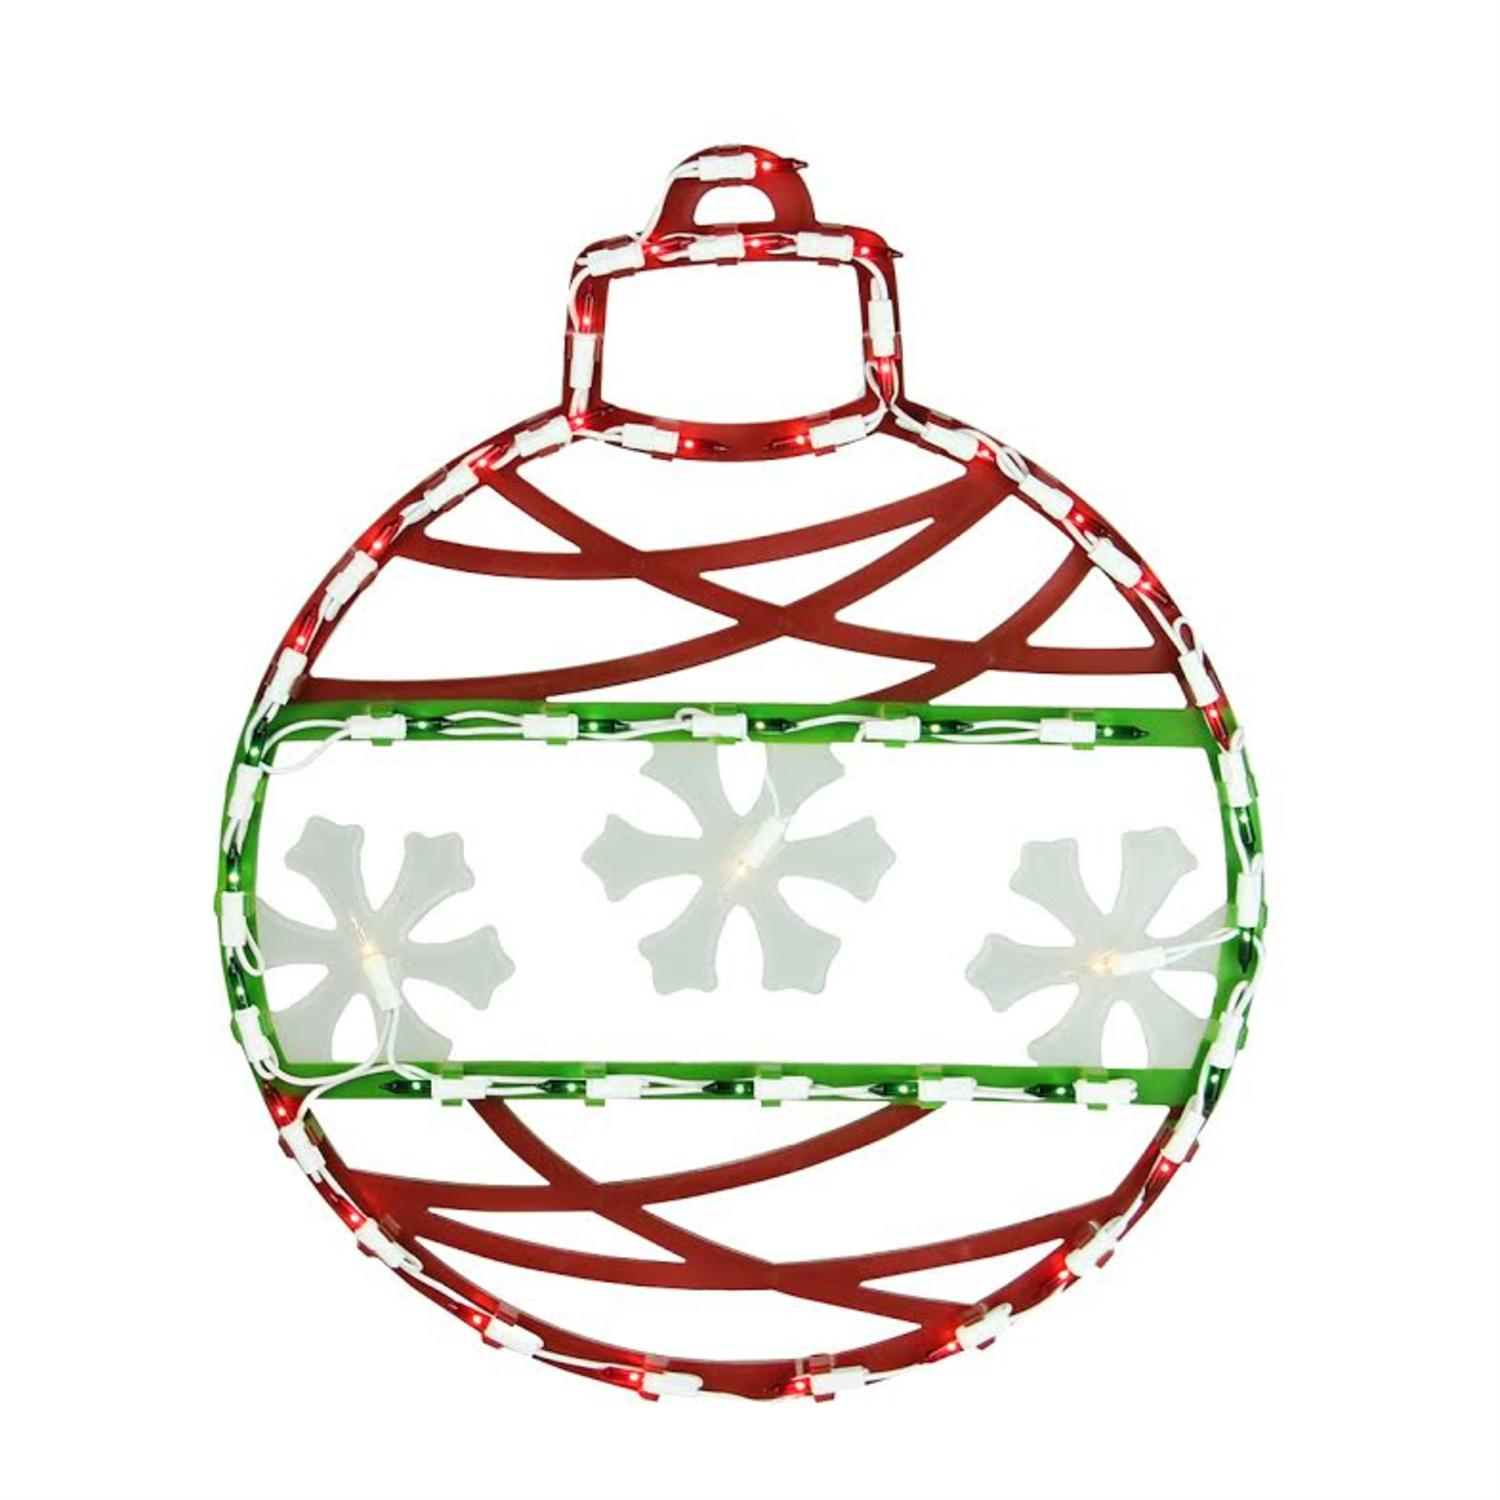 1500x1500 Red, Green Amp White Lighted Christmas Ornament Window Silhouette